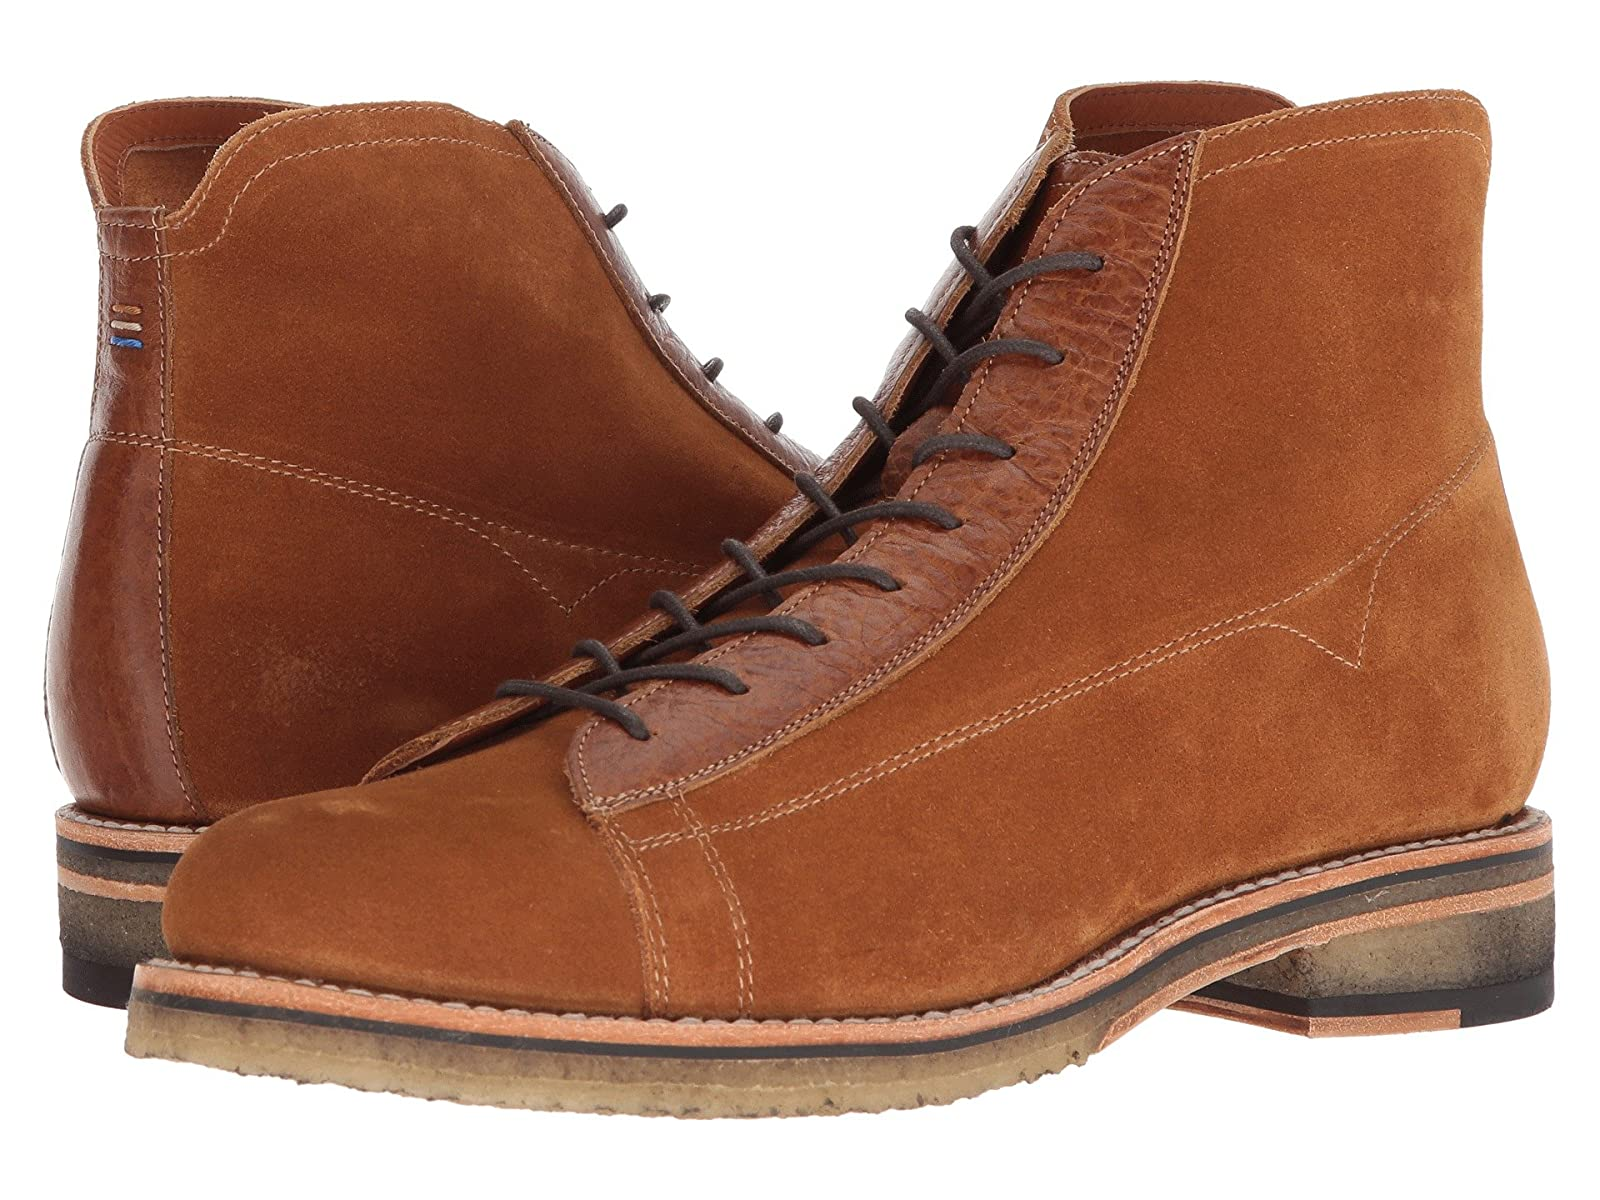 Two24 by Ariat WebsterEconomical and quality shoes